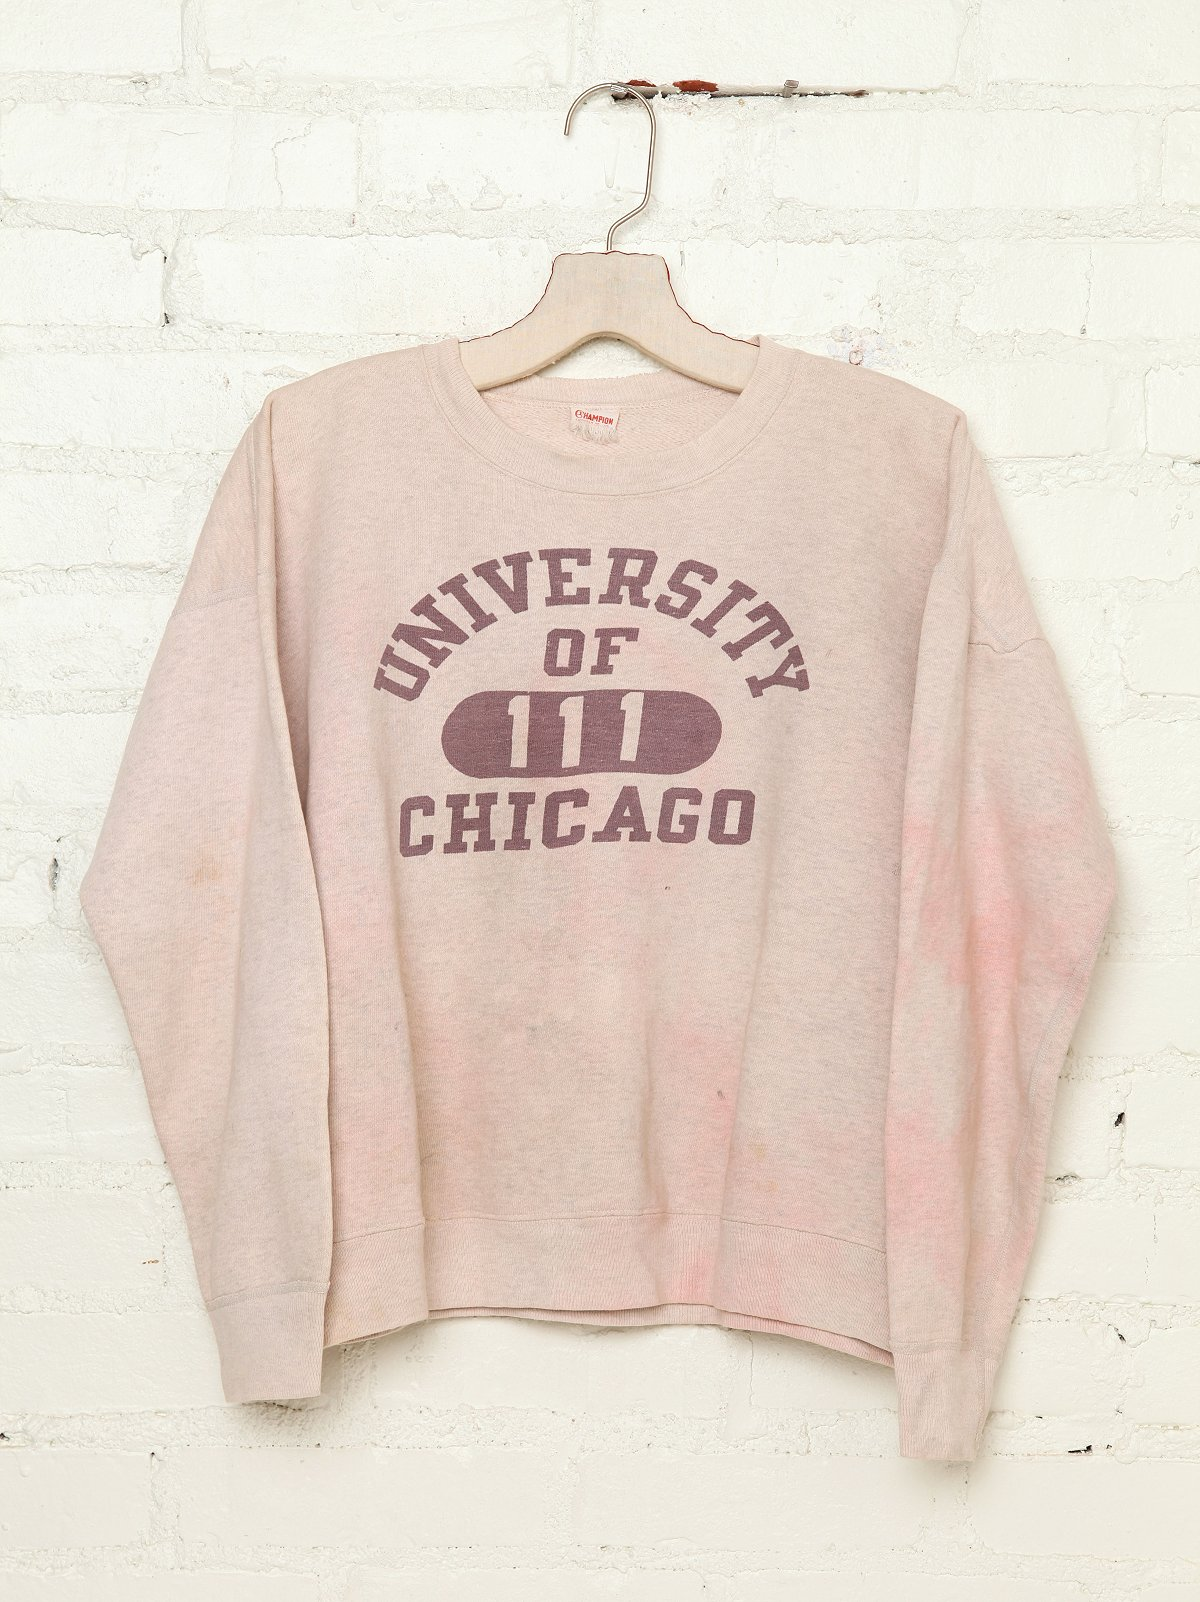 Vintage University of Chicago Sweatshirt